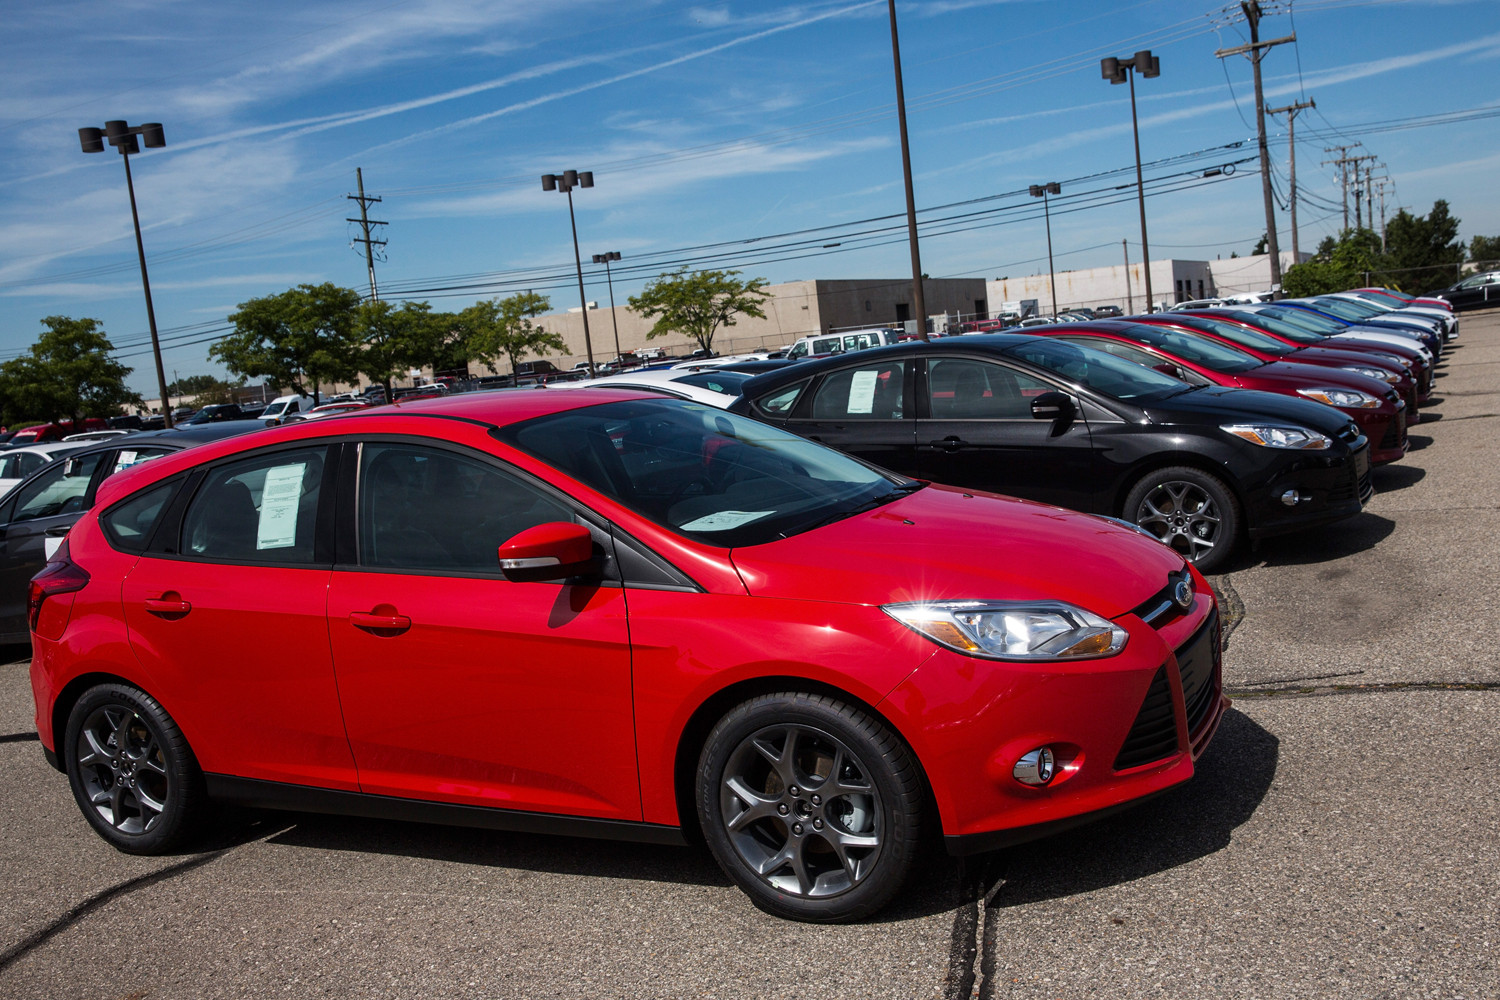 ford bucking trend sending more cars to china nbc news. Black Bedroom Furniture Sets. Home Design Ideas